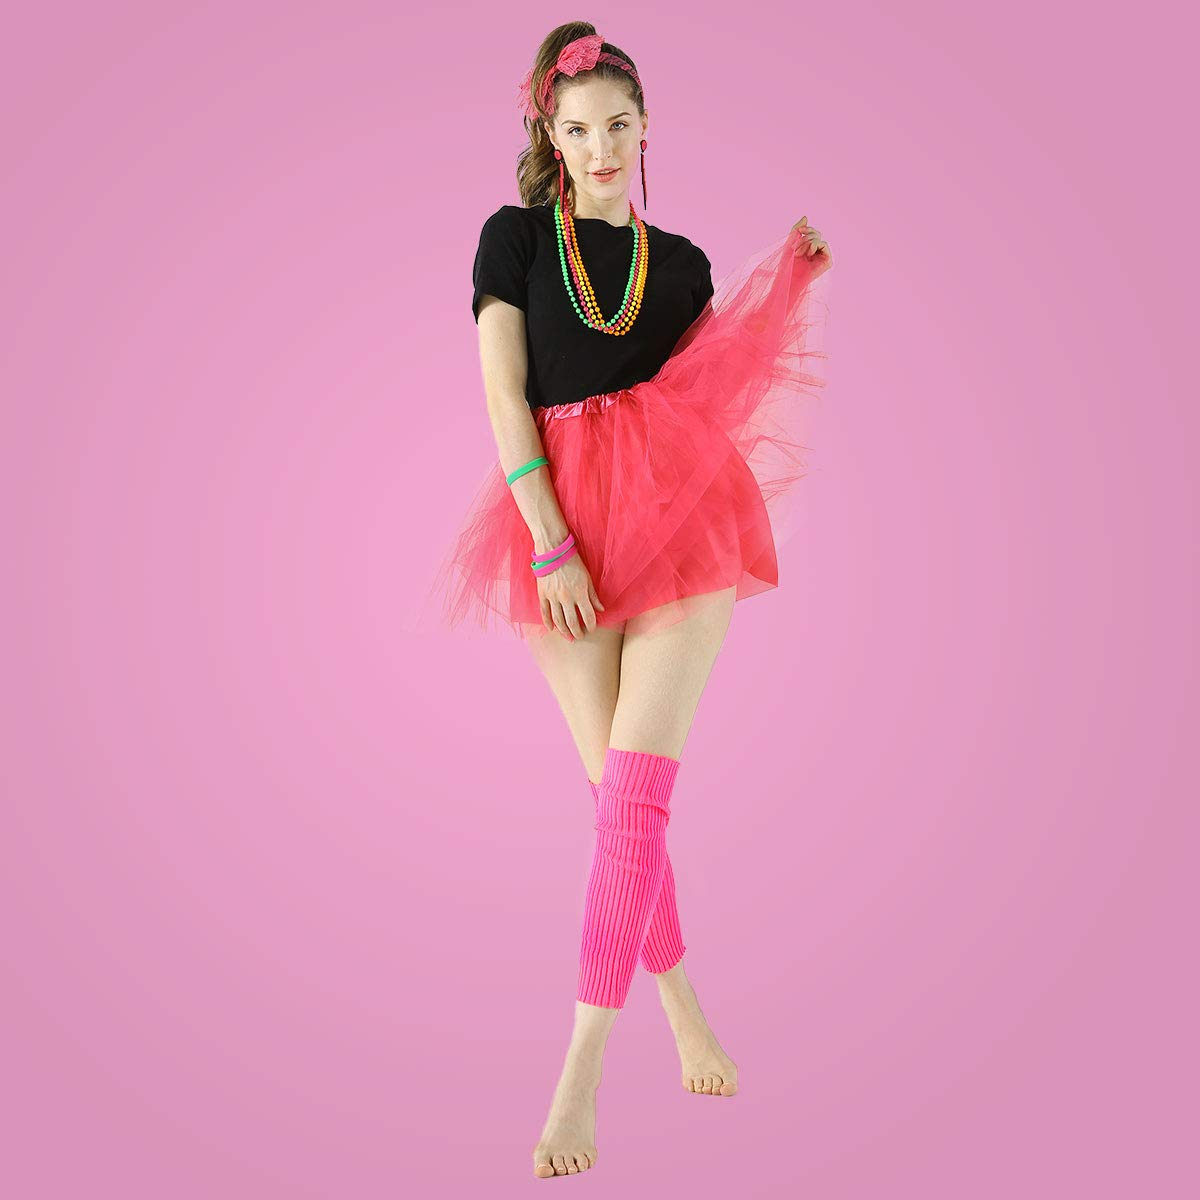 80s Outfit Womens 80s Fancy Outfit Costumes Accessories Set Leg Warmers Fishnet Gloves Neon Earrings Bracelet and Beads